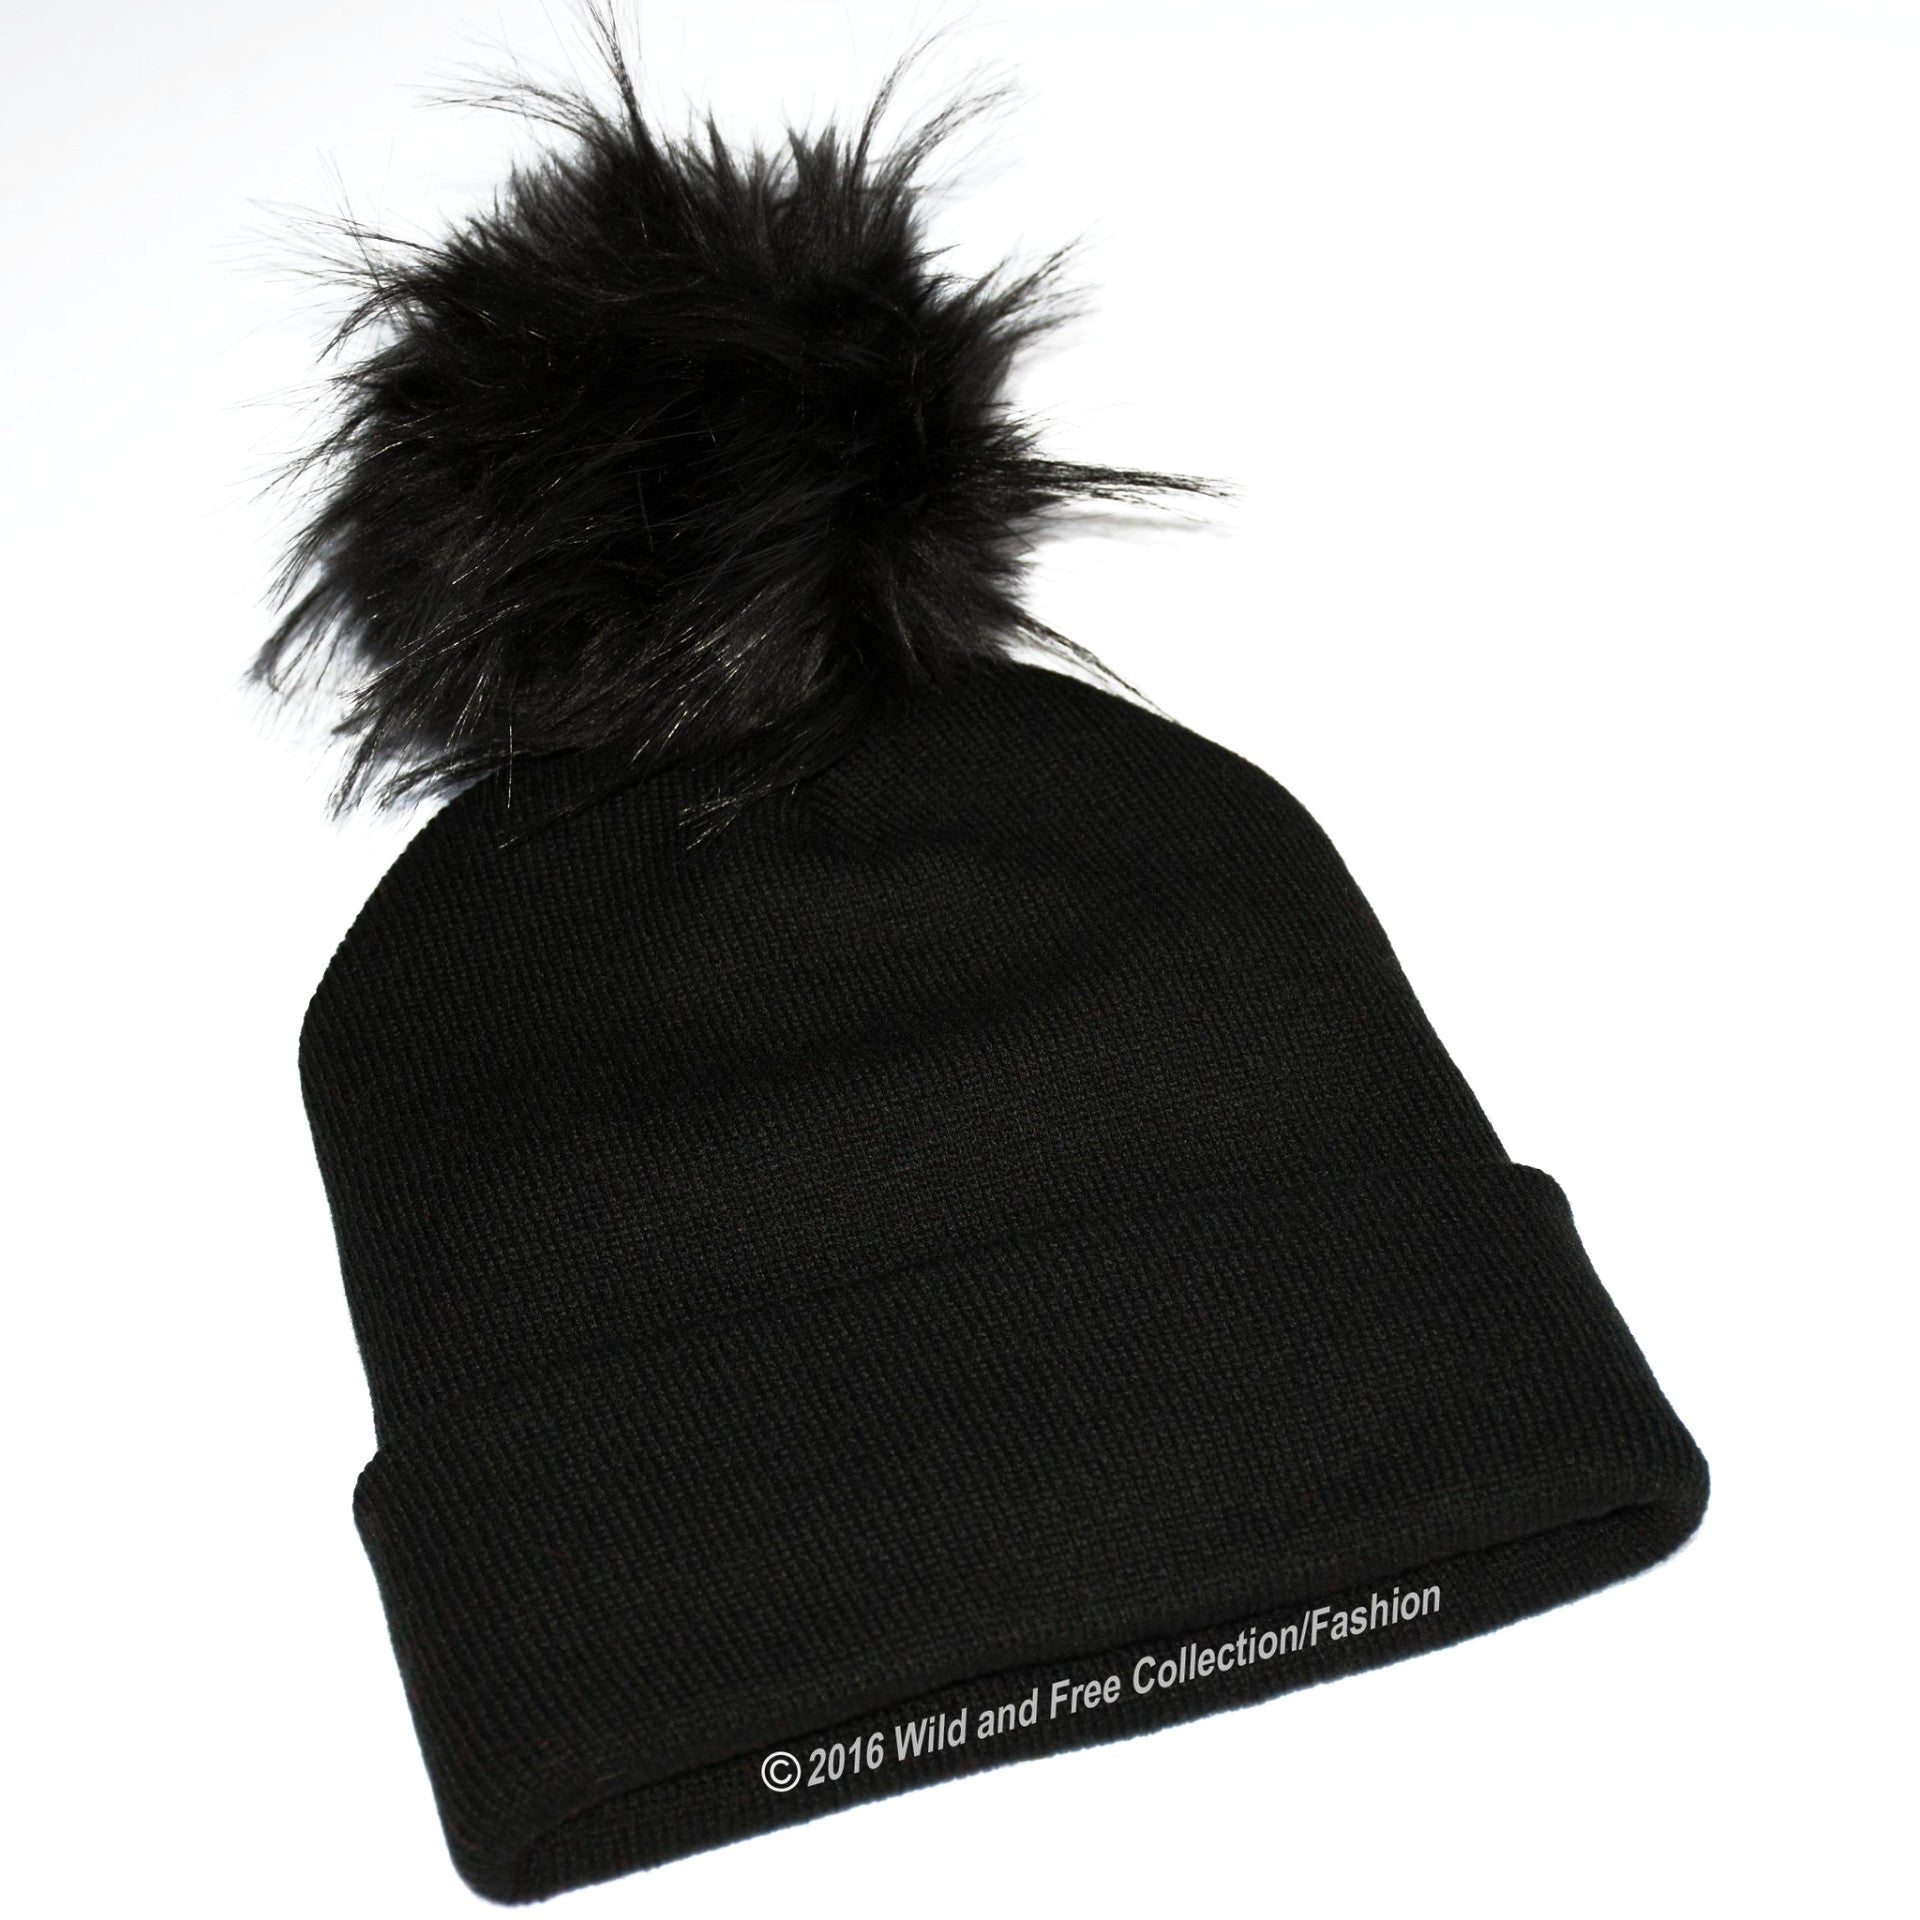 Winter beanie toque with faux fur pom pom ... ad0e68dbbf3